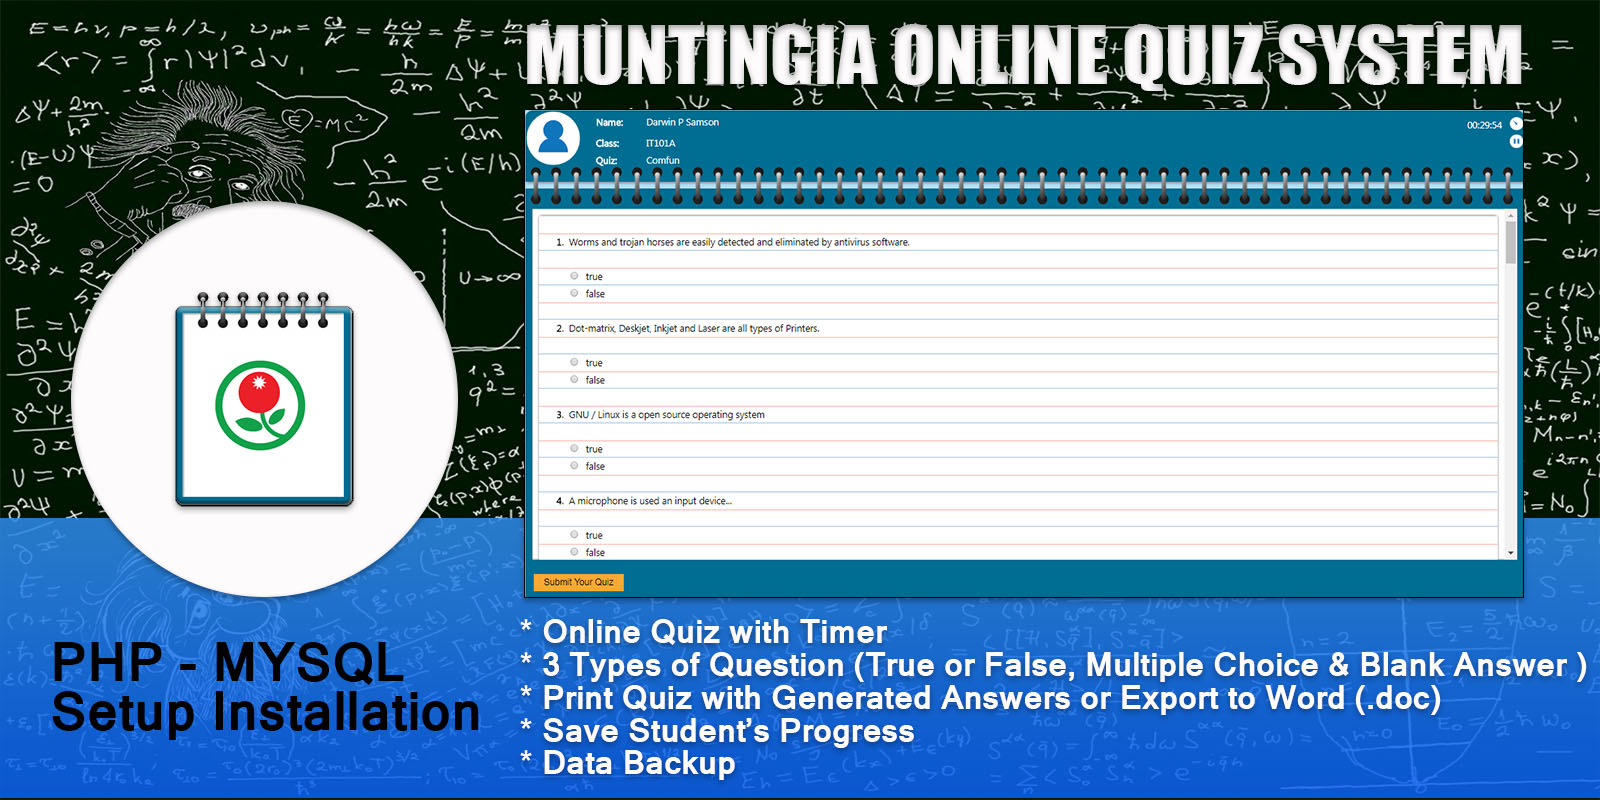 Muntingia PHP Online Quiz With Timer